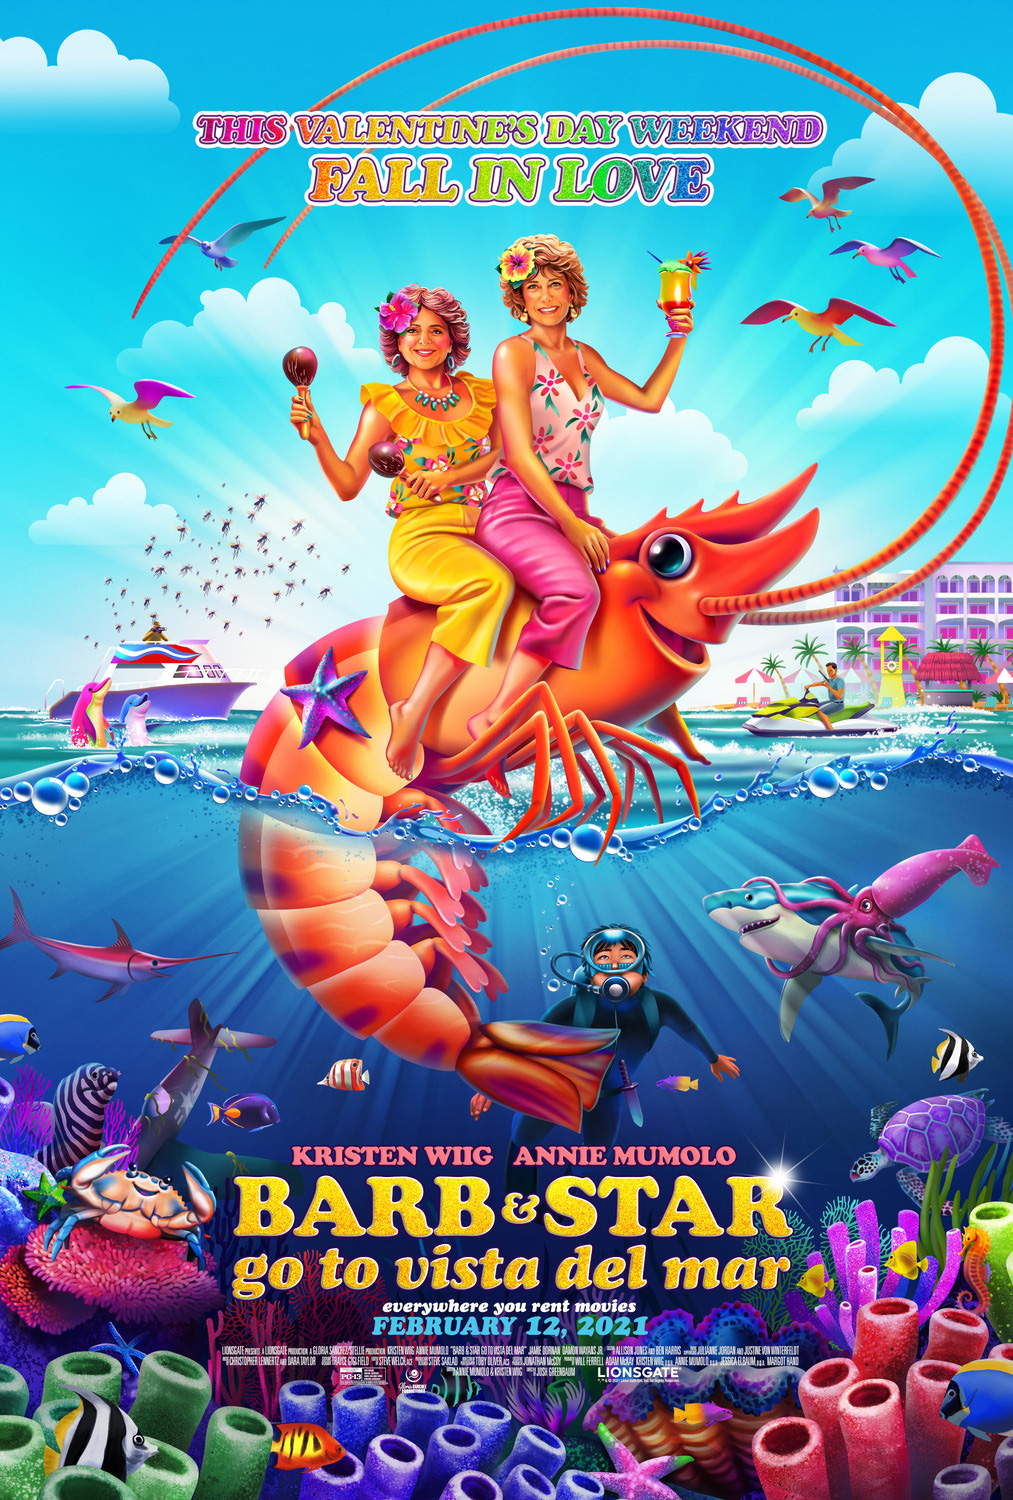 Barb and Star Go To Vista Del Mar | Poster Finishing & Illustration